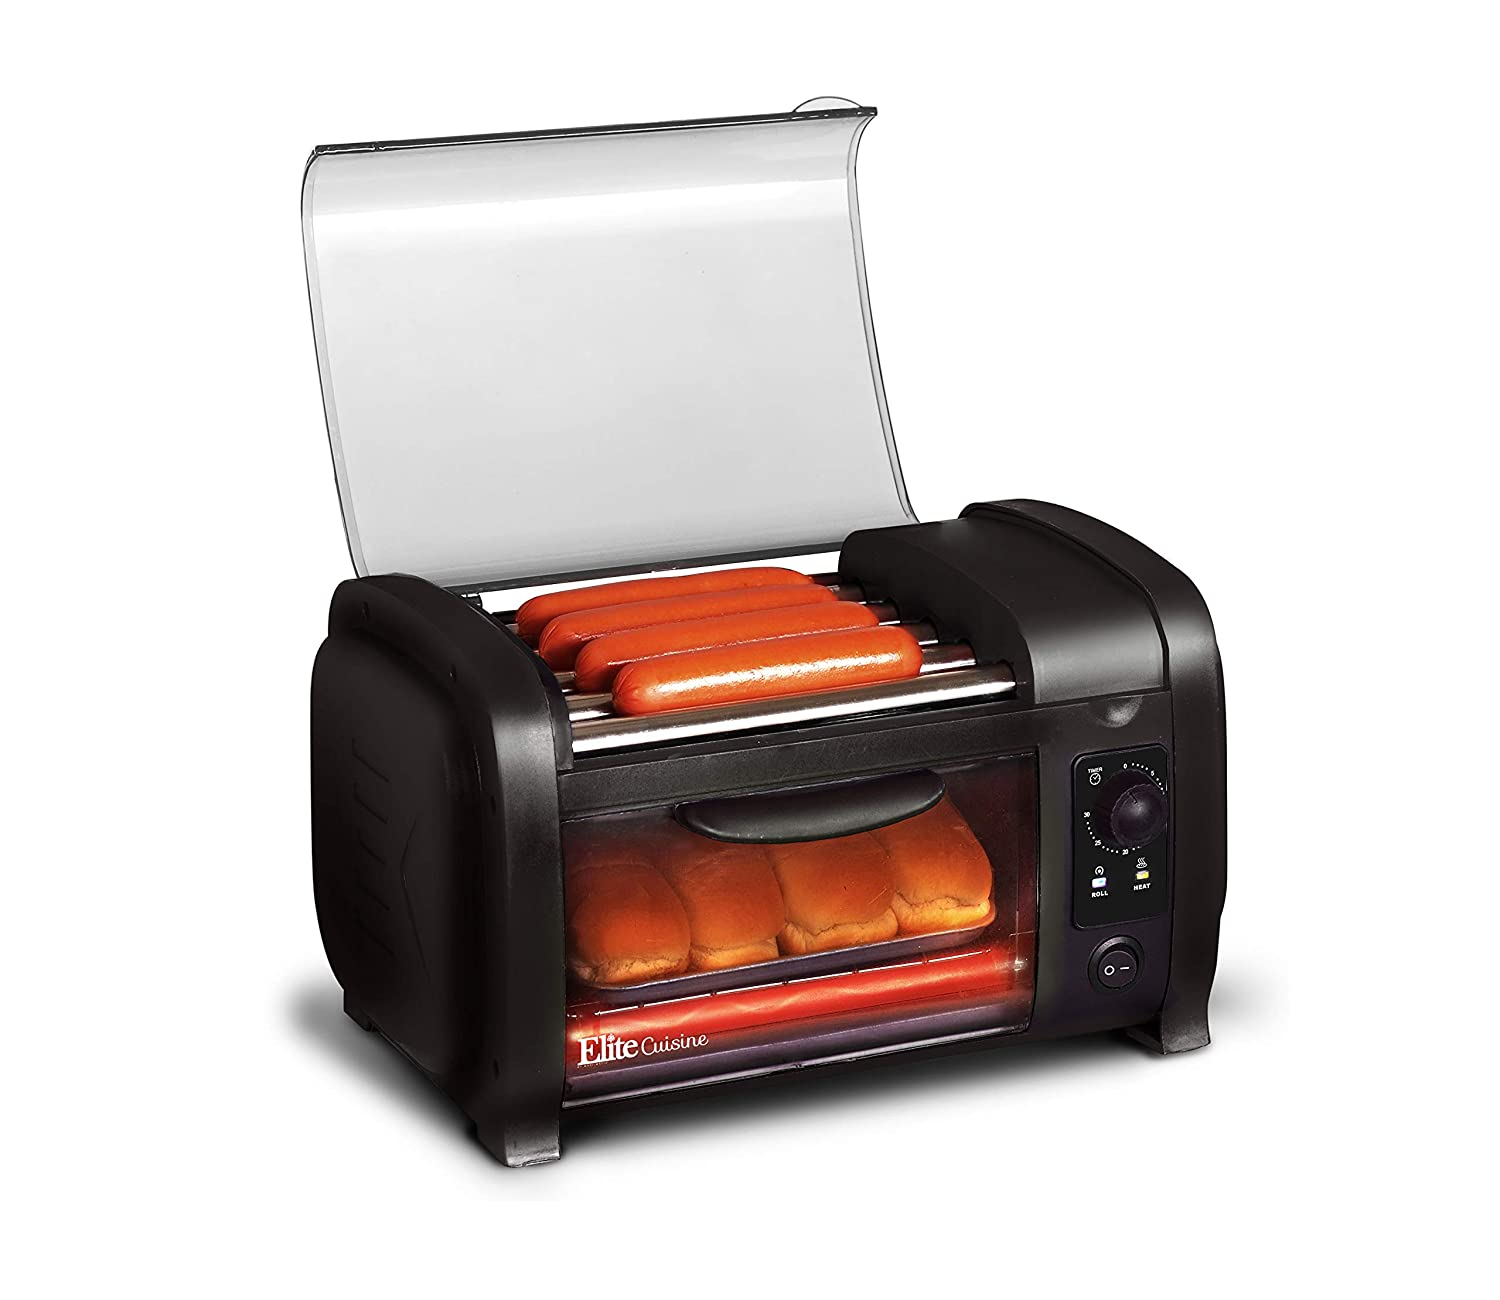 Elite Cuisine EHD-051B Hot Dog Toaster Oven, 30-Min Timer, Stainless Steel Heat Rollers Bake & Crumb Tray, World Series Baseball, 4 Bun Capacity Black